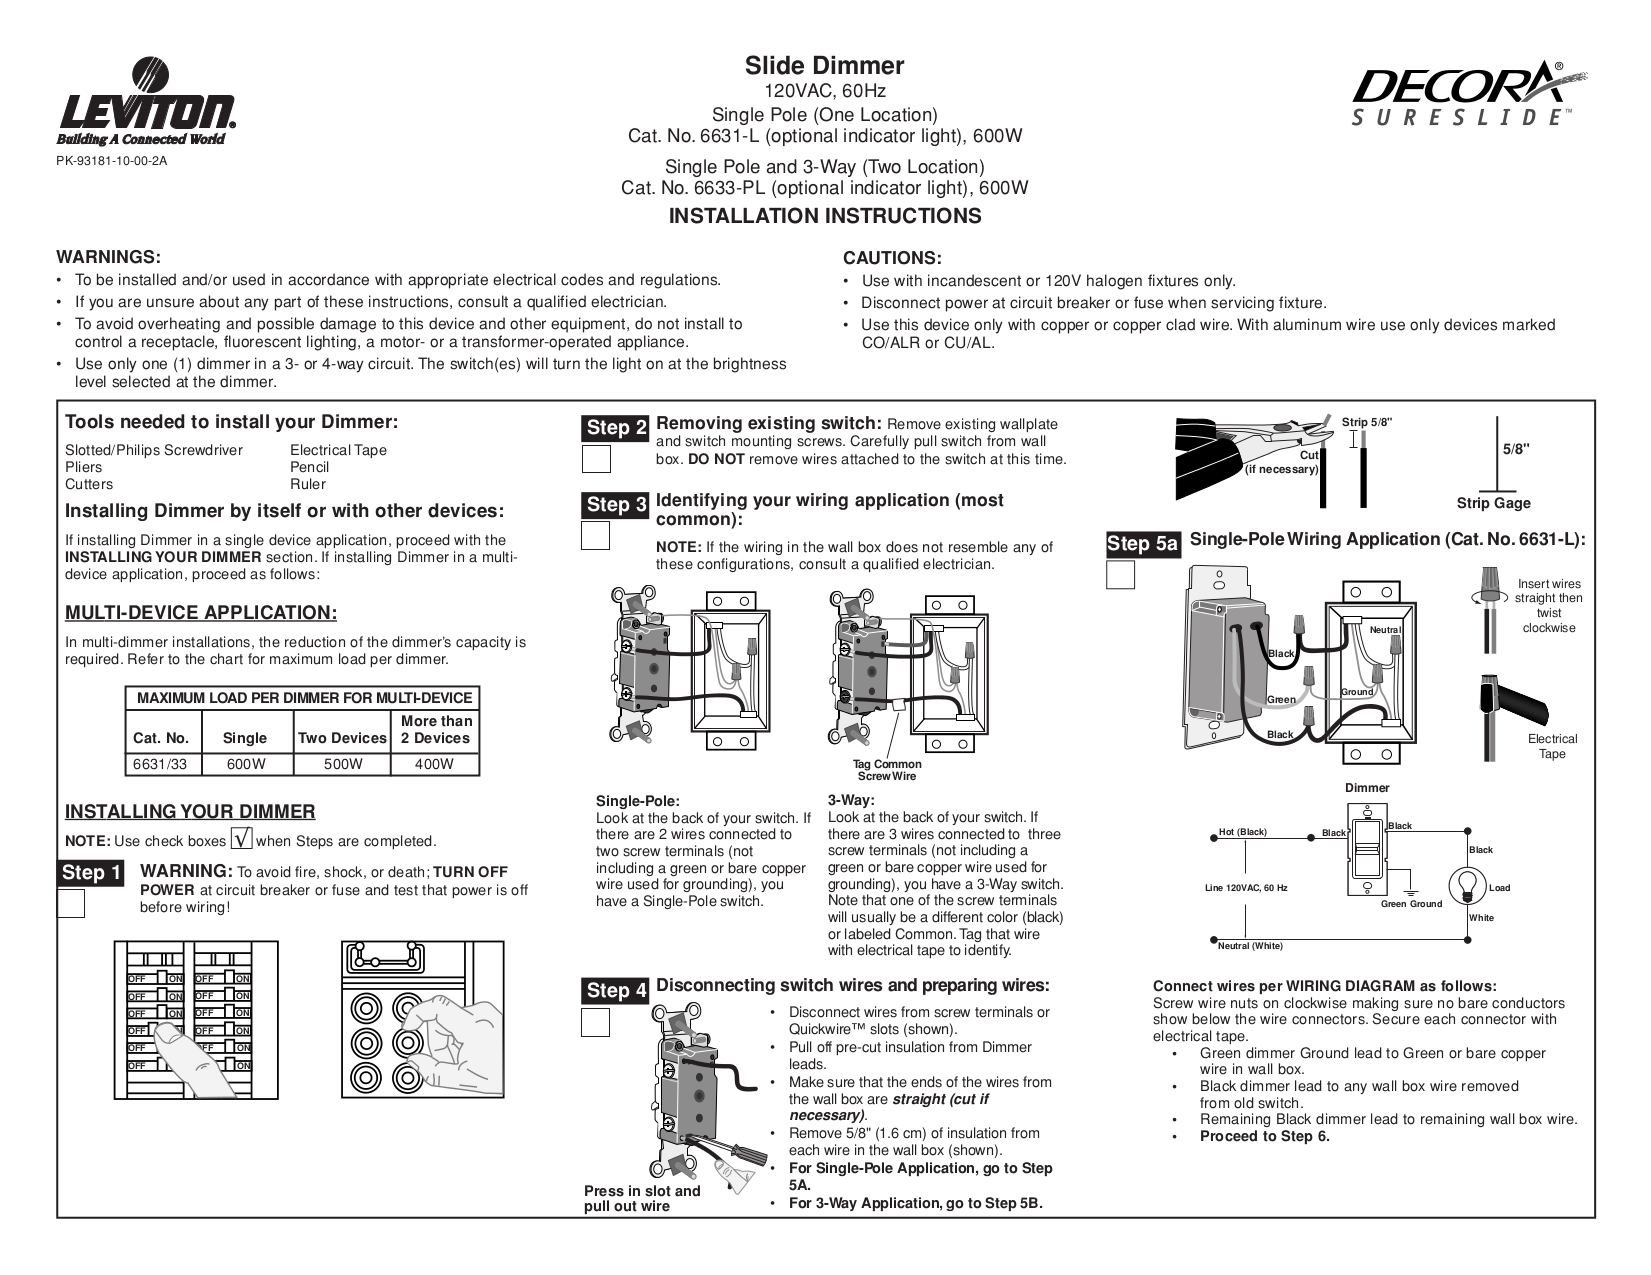 hight resolution of download free pdf for leviton sureslide 6631 l dimmers other manual leviton 6633 p wiring diagram leviton 6633 p wiring diagram